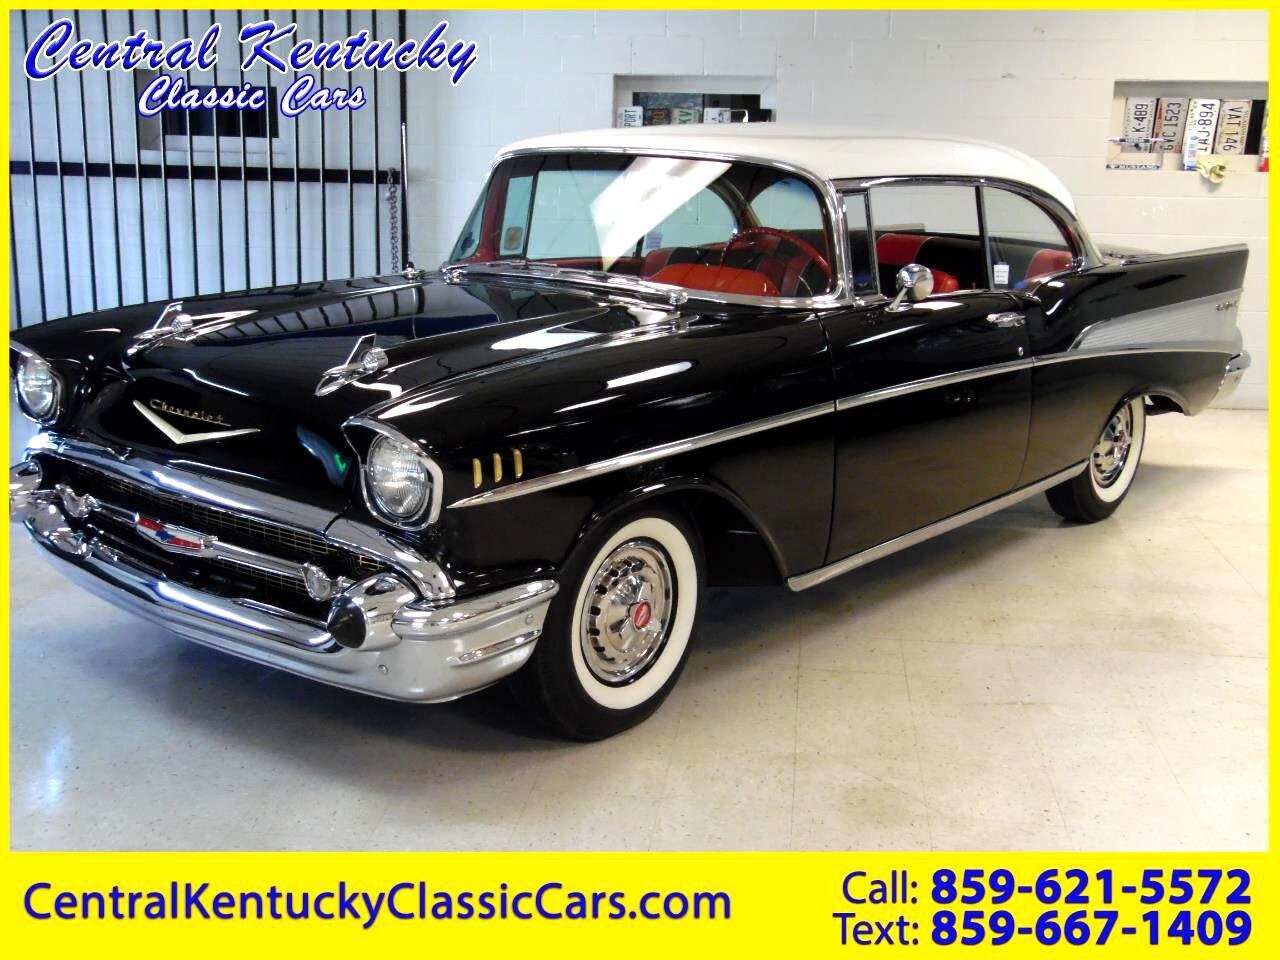 Used 1957 Chevrolet BelAir Sold in Paris KY 40361 Central